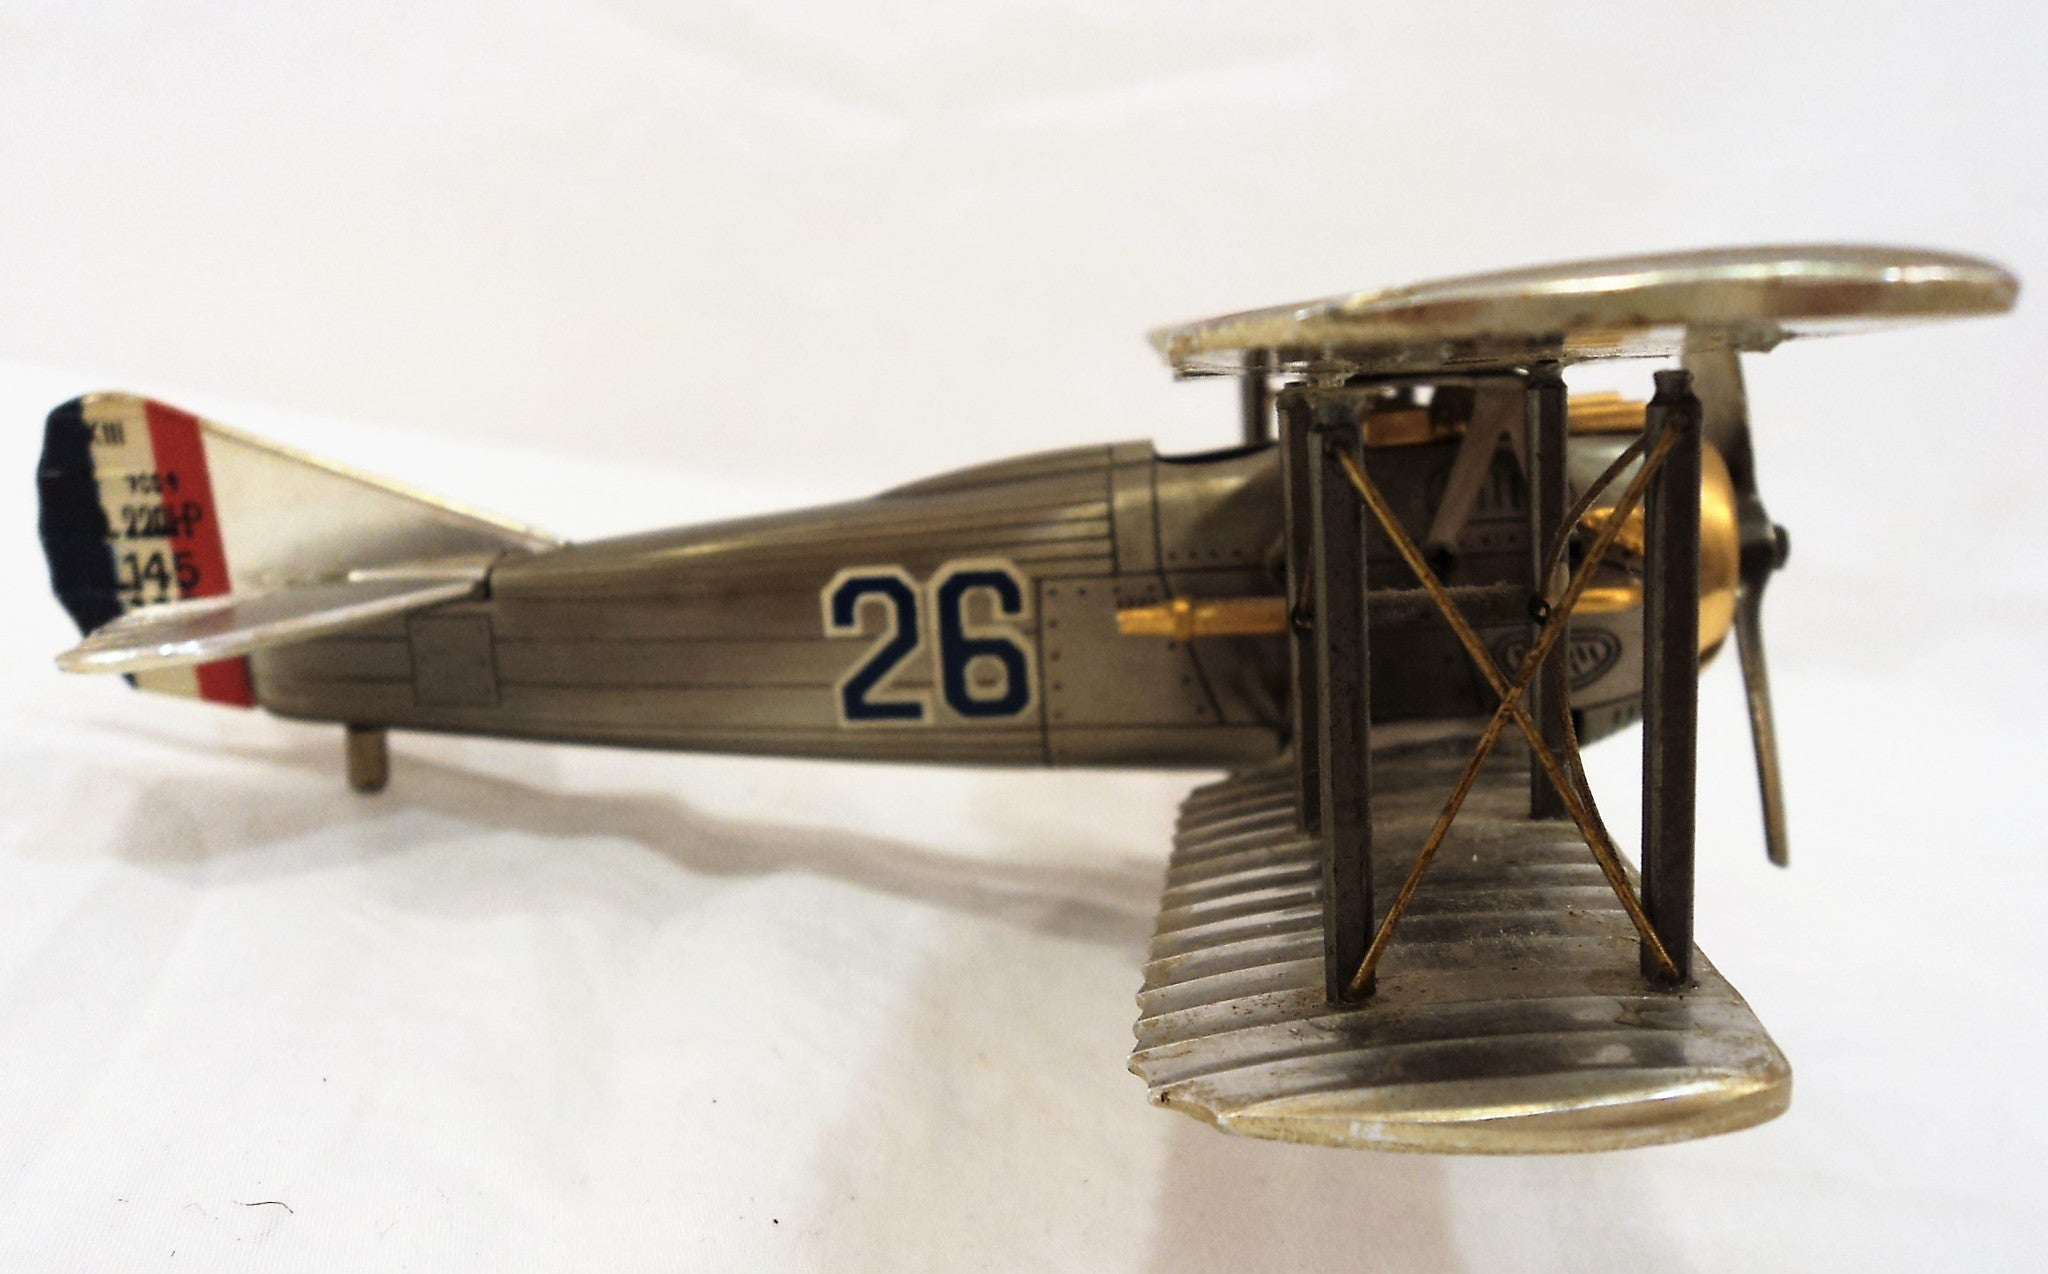 Vintage Die Cast Metal Model Plane